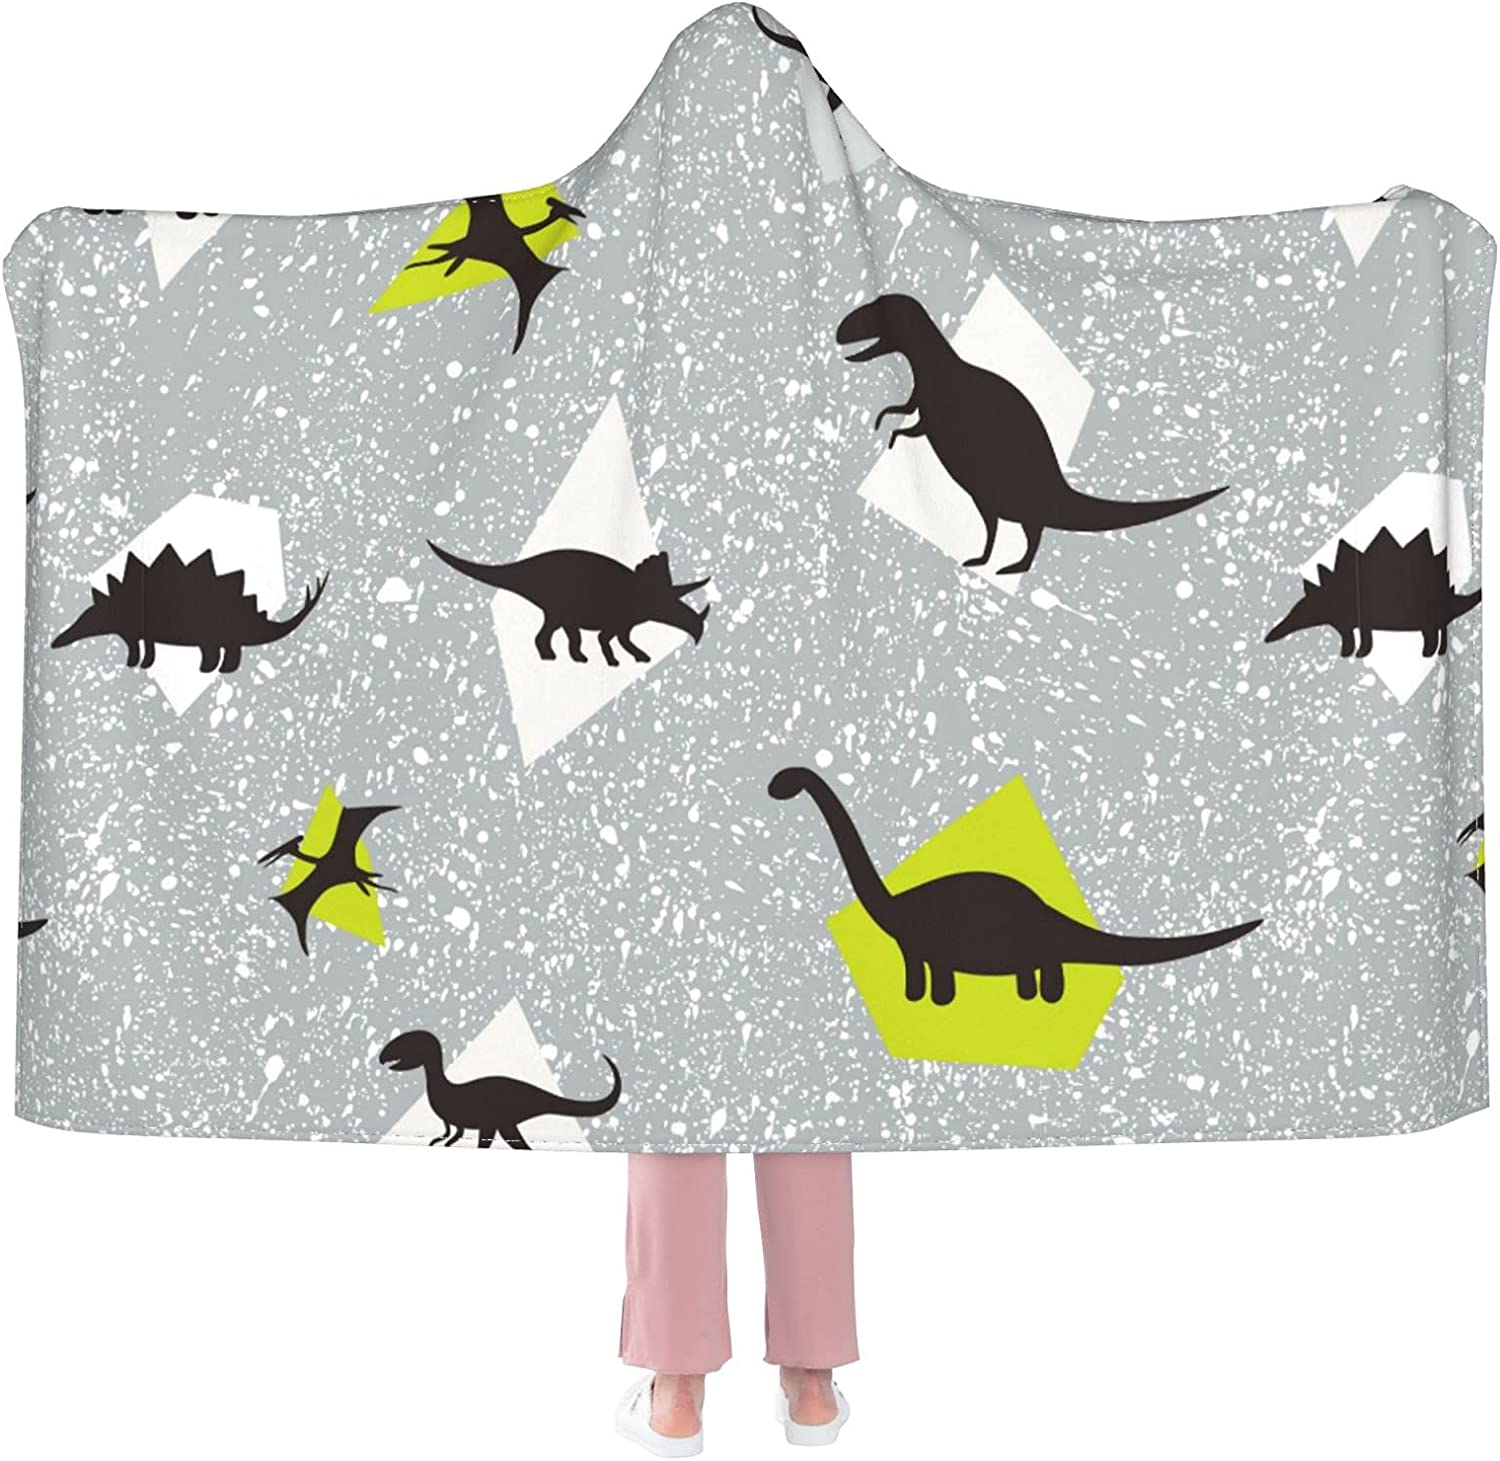 Cute Dinosaurs 35% OFF online shop Hooded Blanket for Adults Teens Anti-Pilling Kids